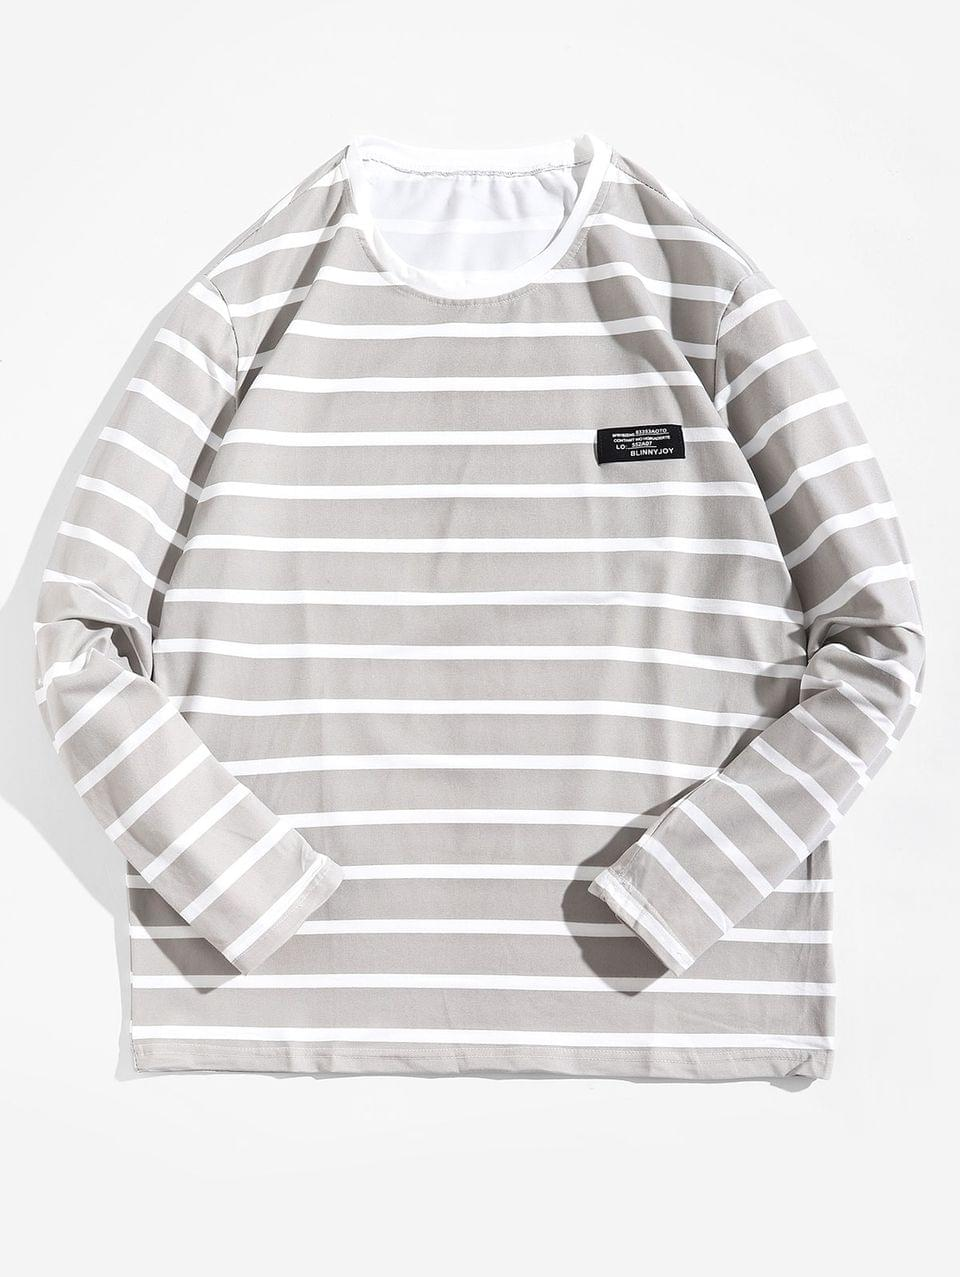 Men's Long Sleeve Striped Label Design T-shirt - Light Gray L